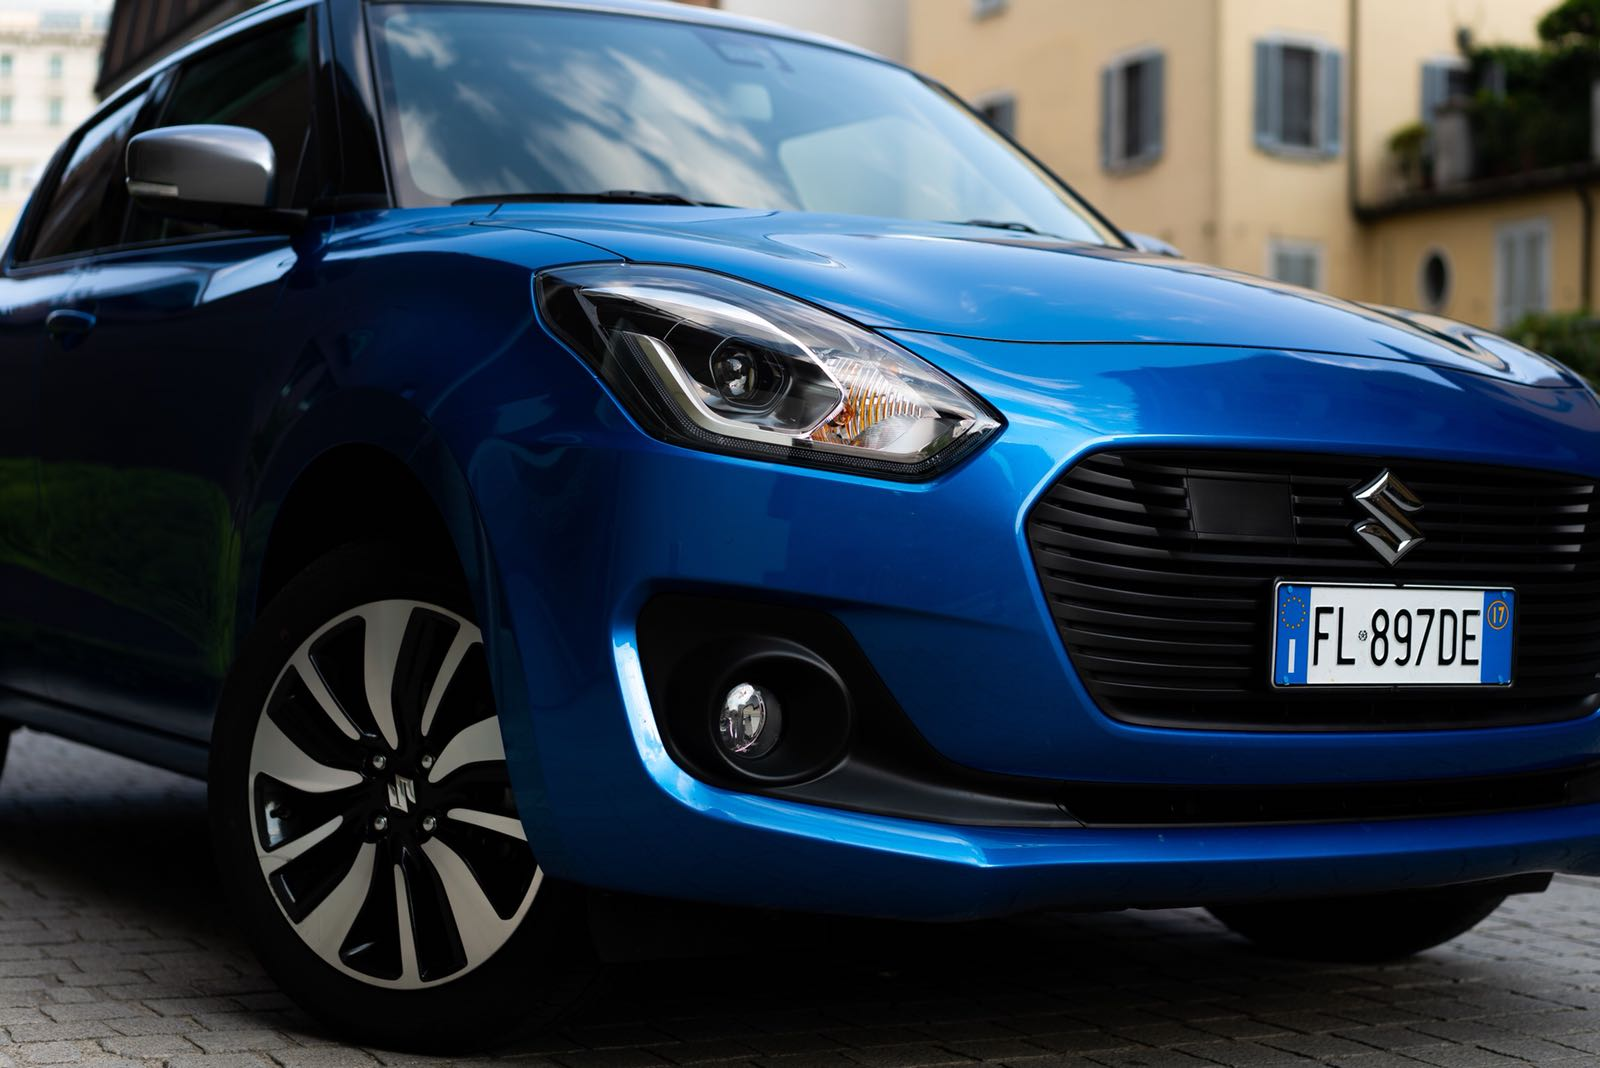 Suzuki Swift Hybrid All Grip tre quarti anteriore